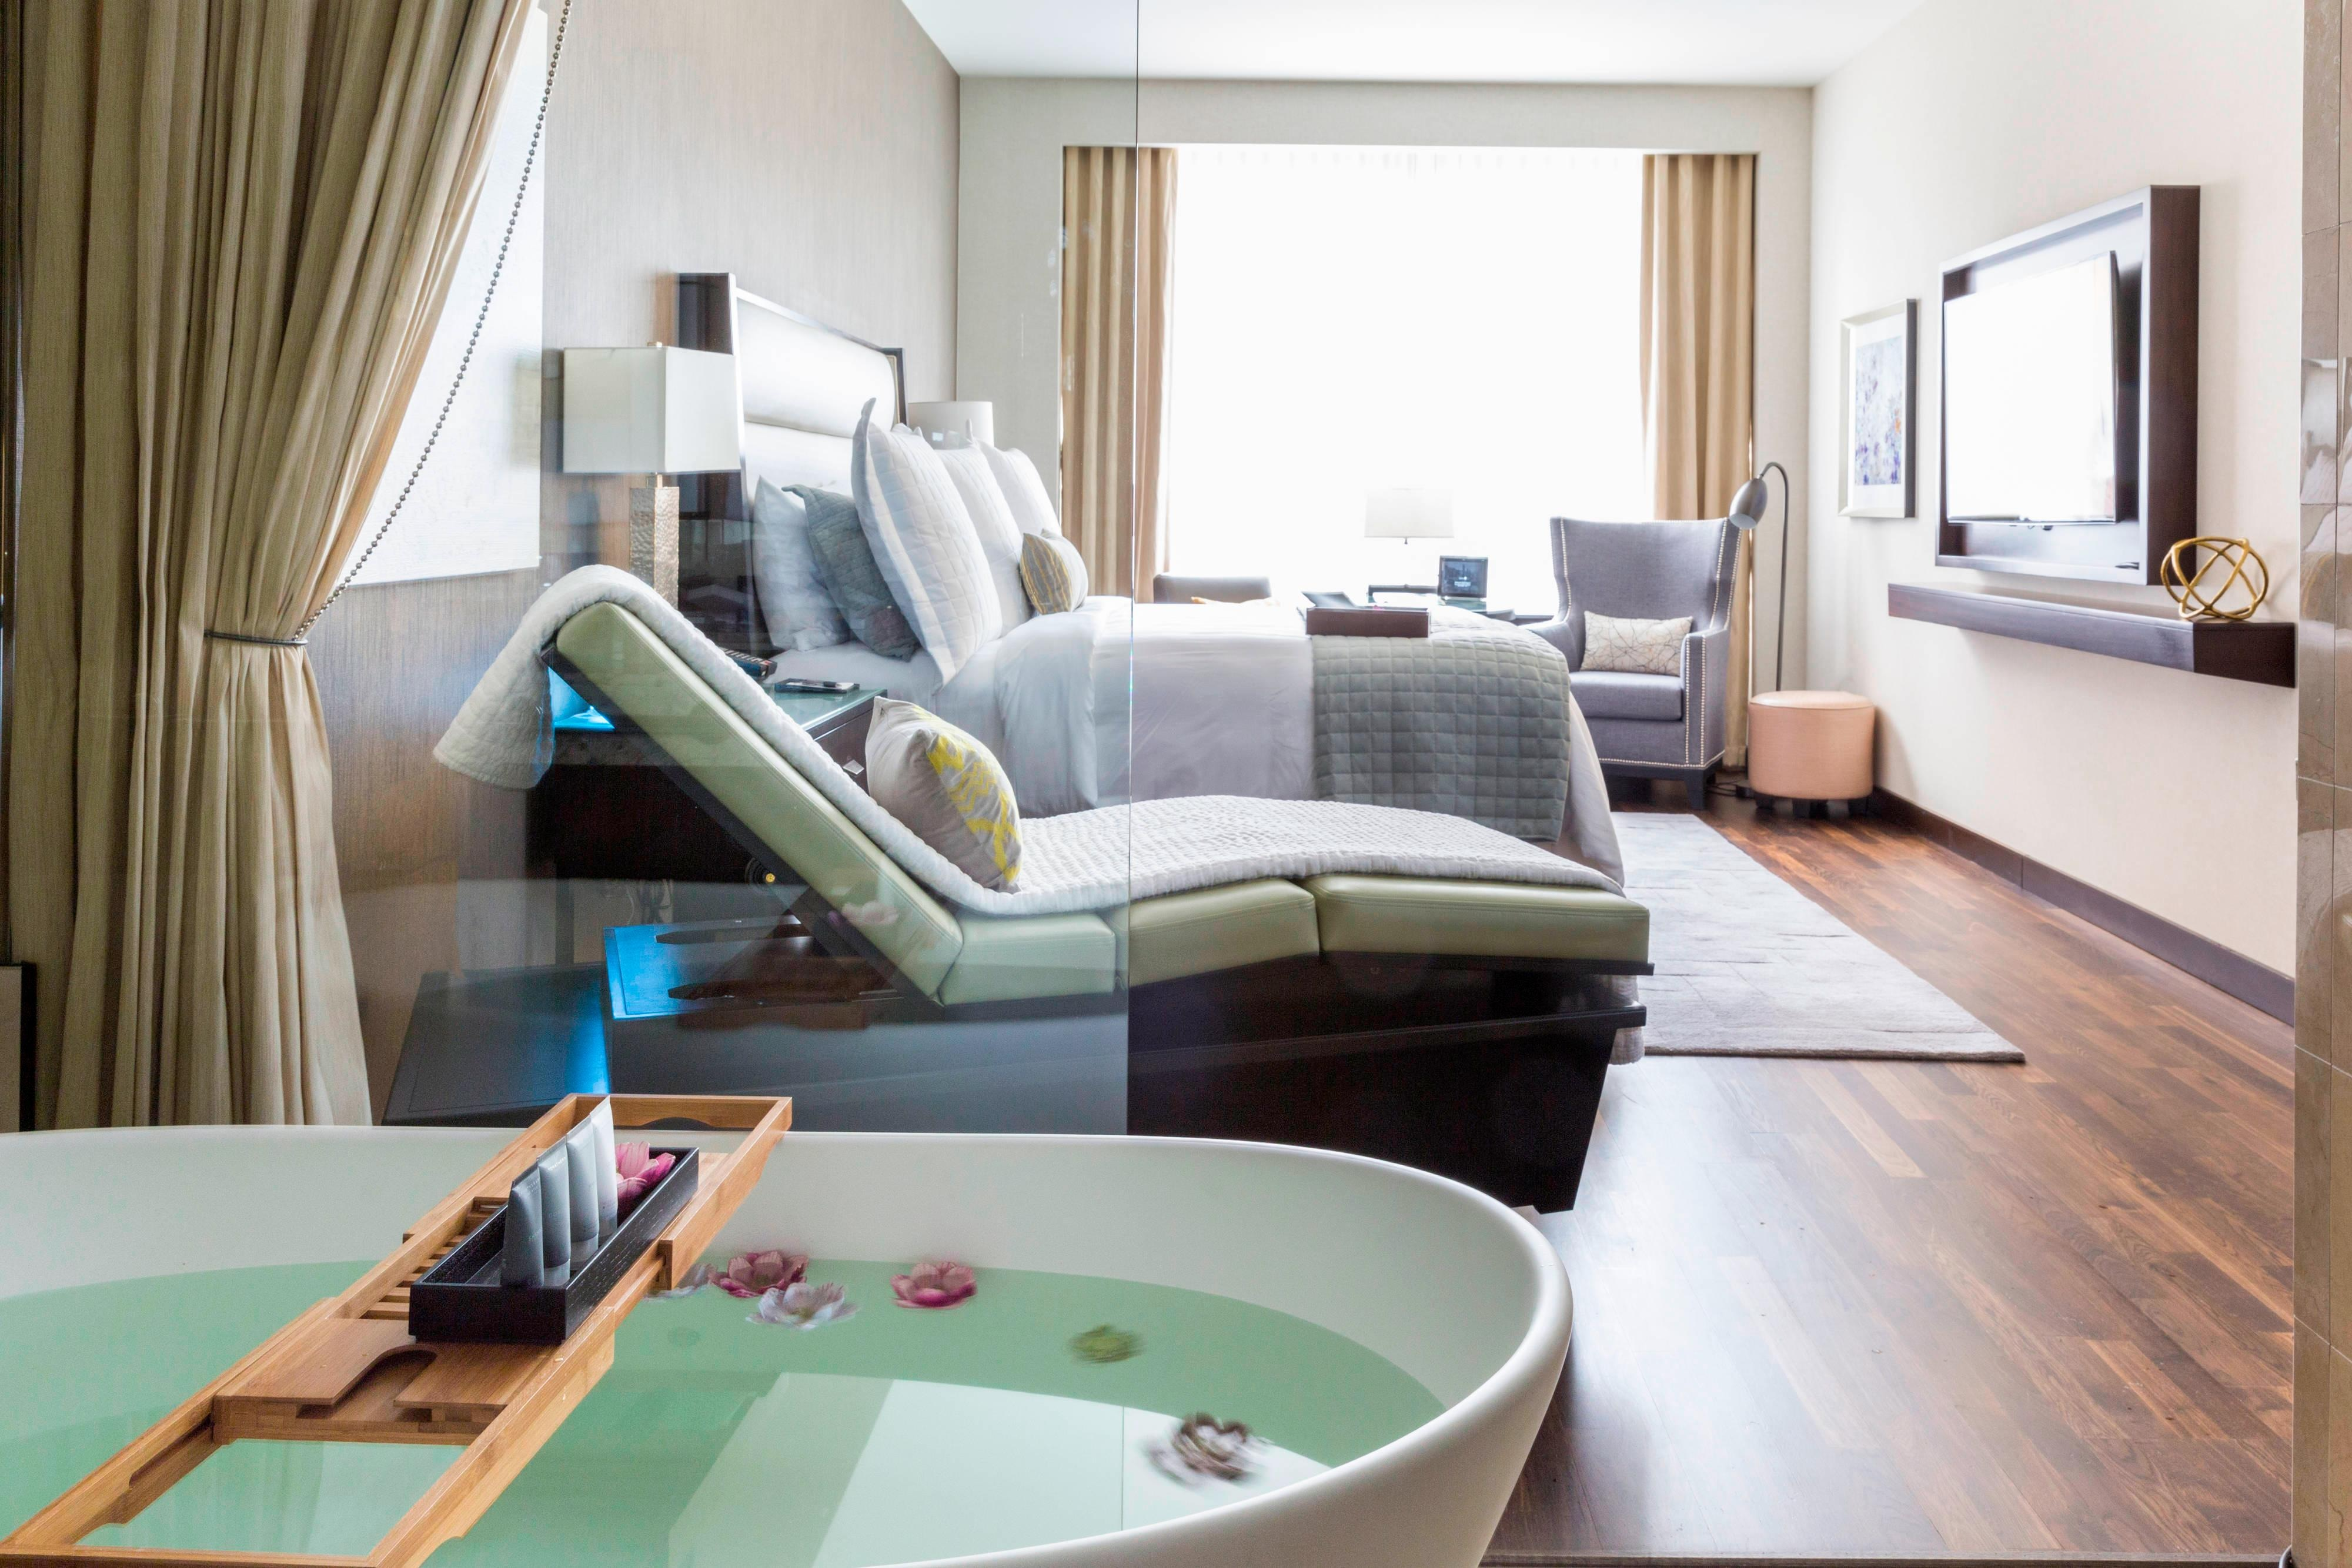 Suite im Spa-Stil